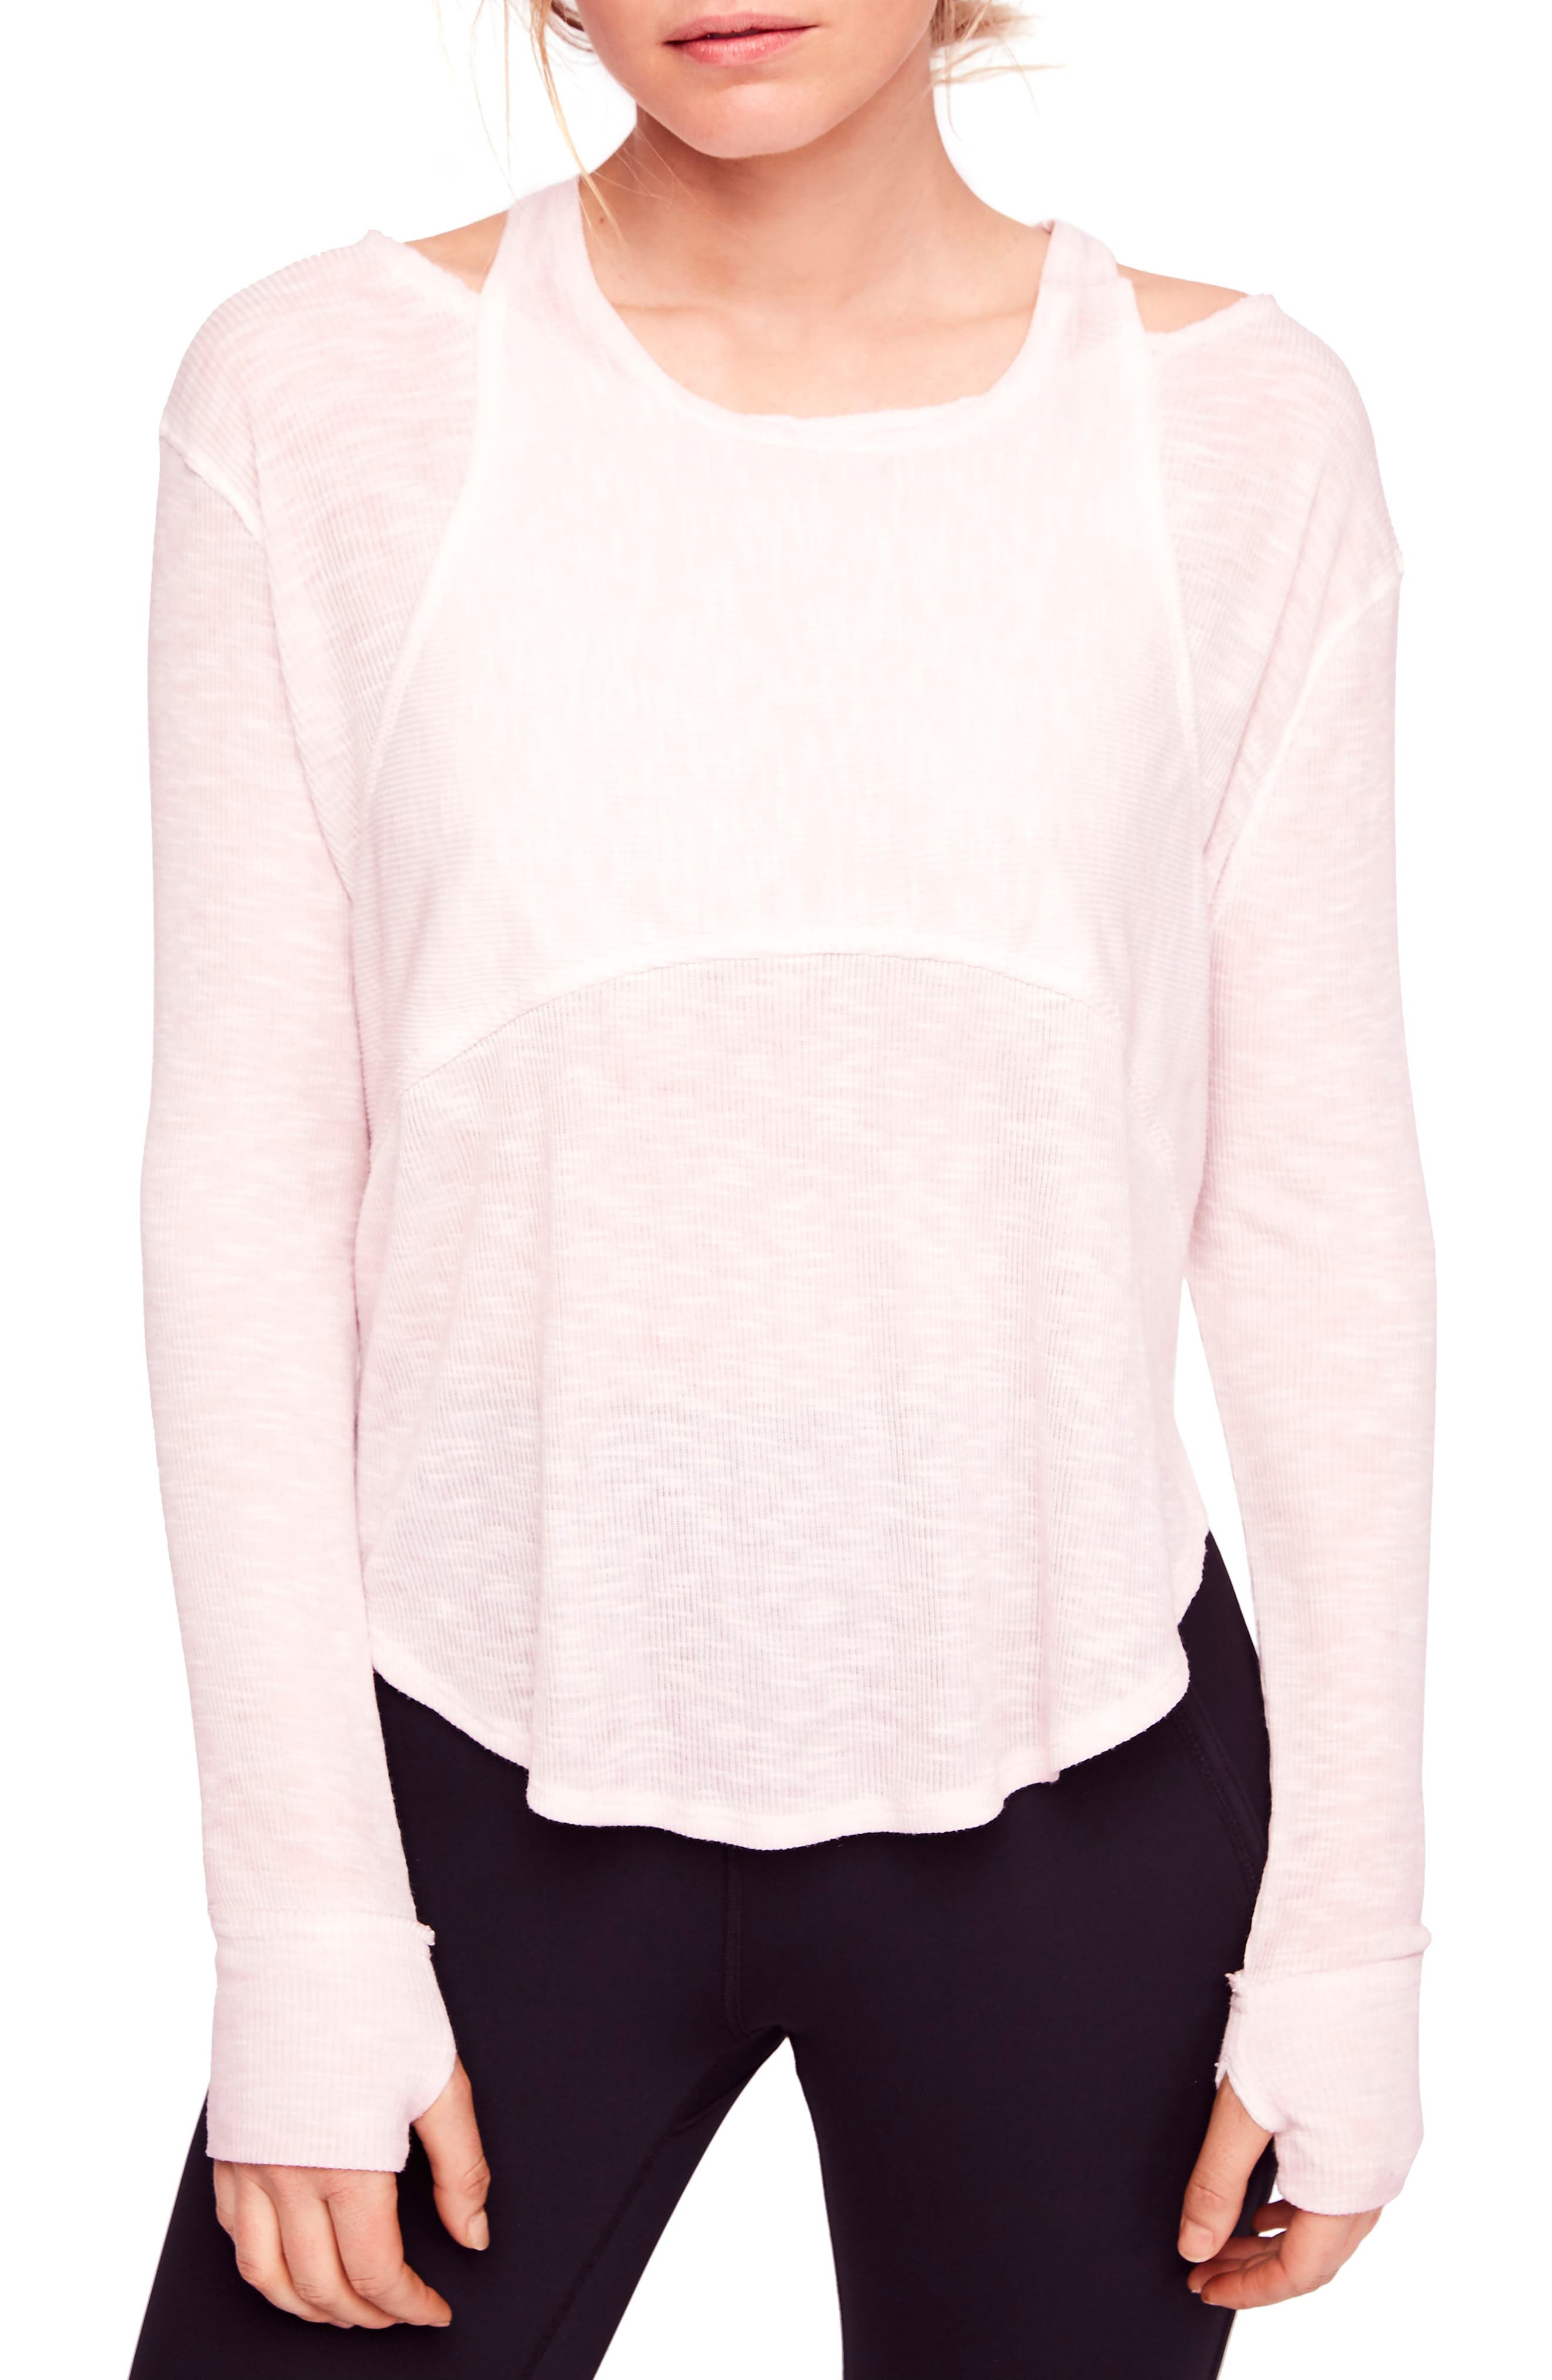 FREE PEOPLE MOVEMENT Zenith Tee in Dusty Mauve